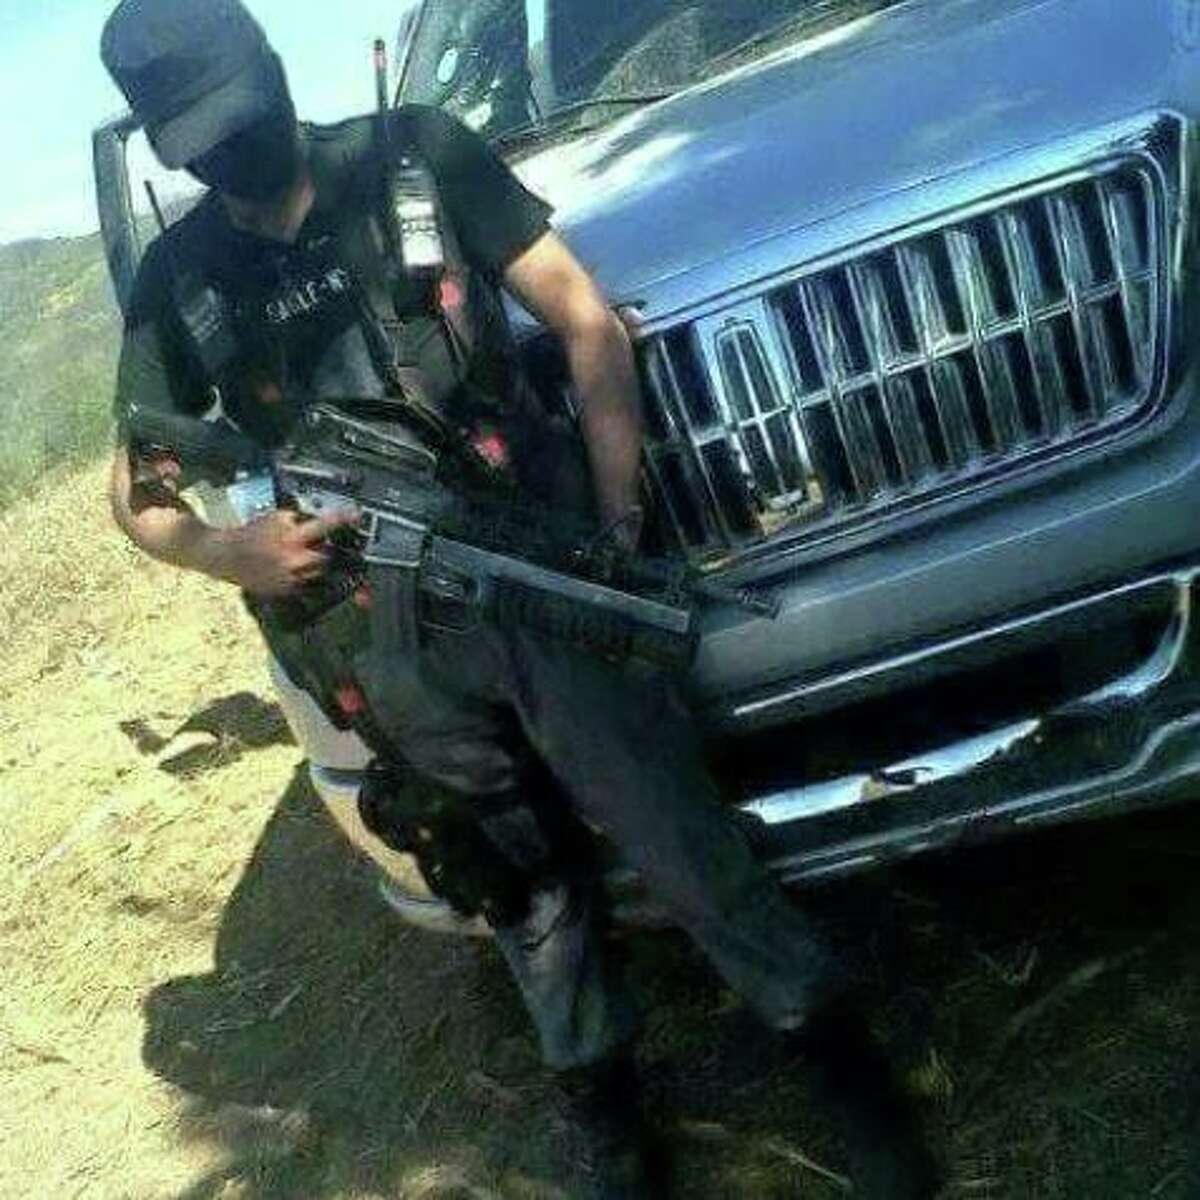 El Blog Del Narco published 25 more photos on Friday of alleged Gulf Cartel members showing their faces and heavy weaponry.